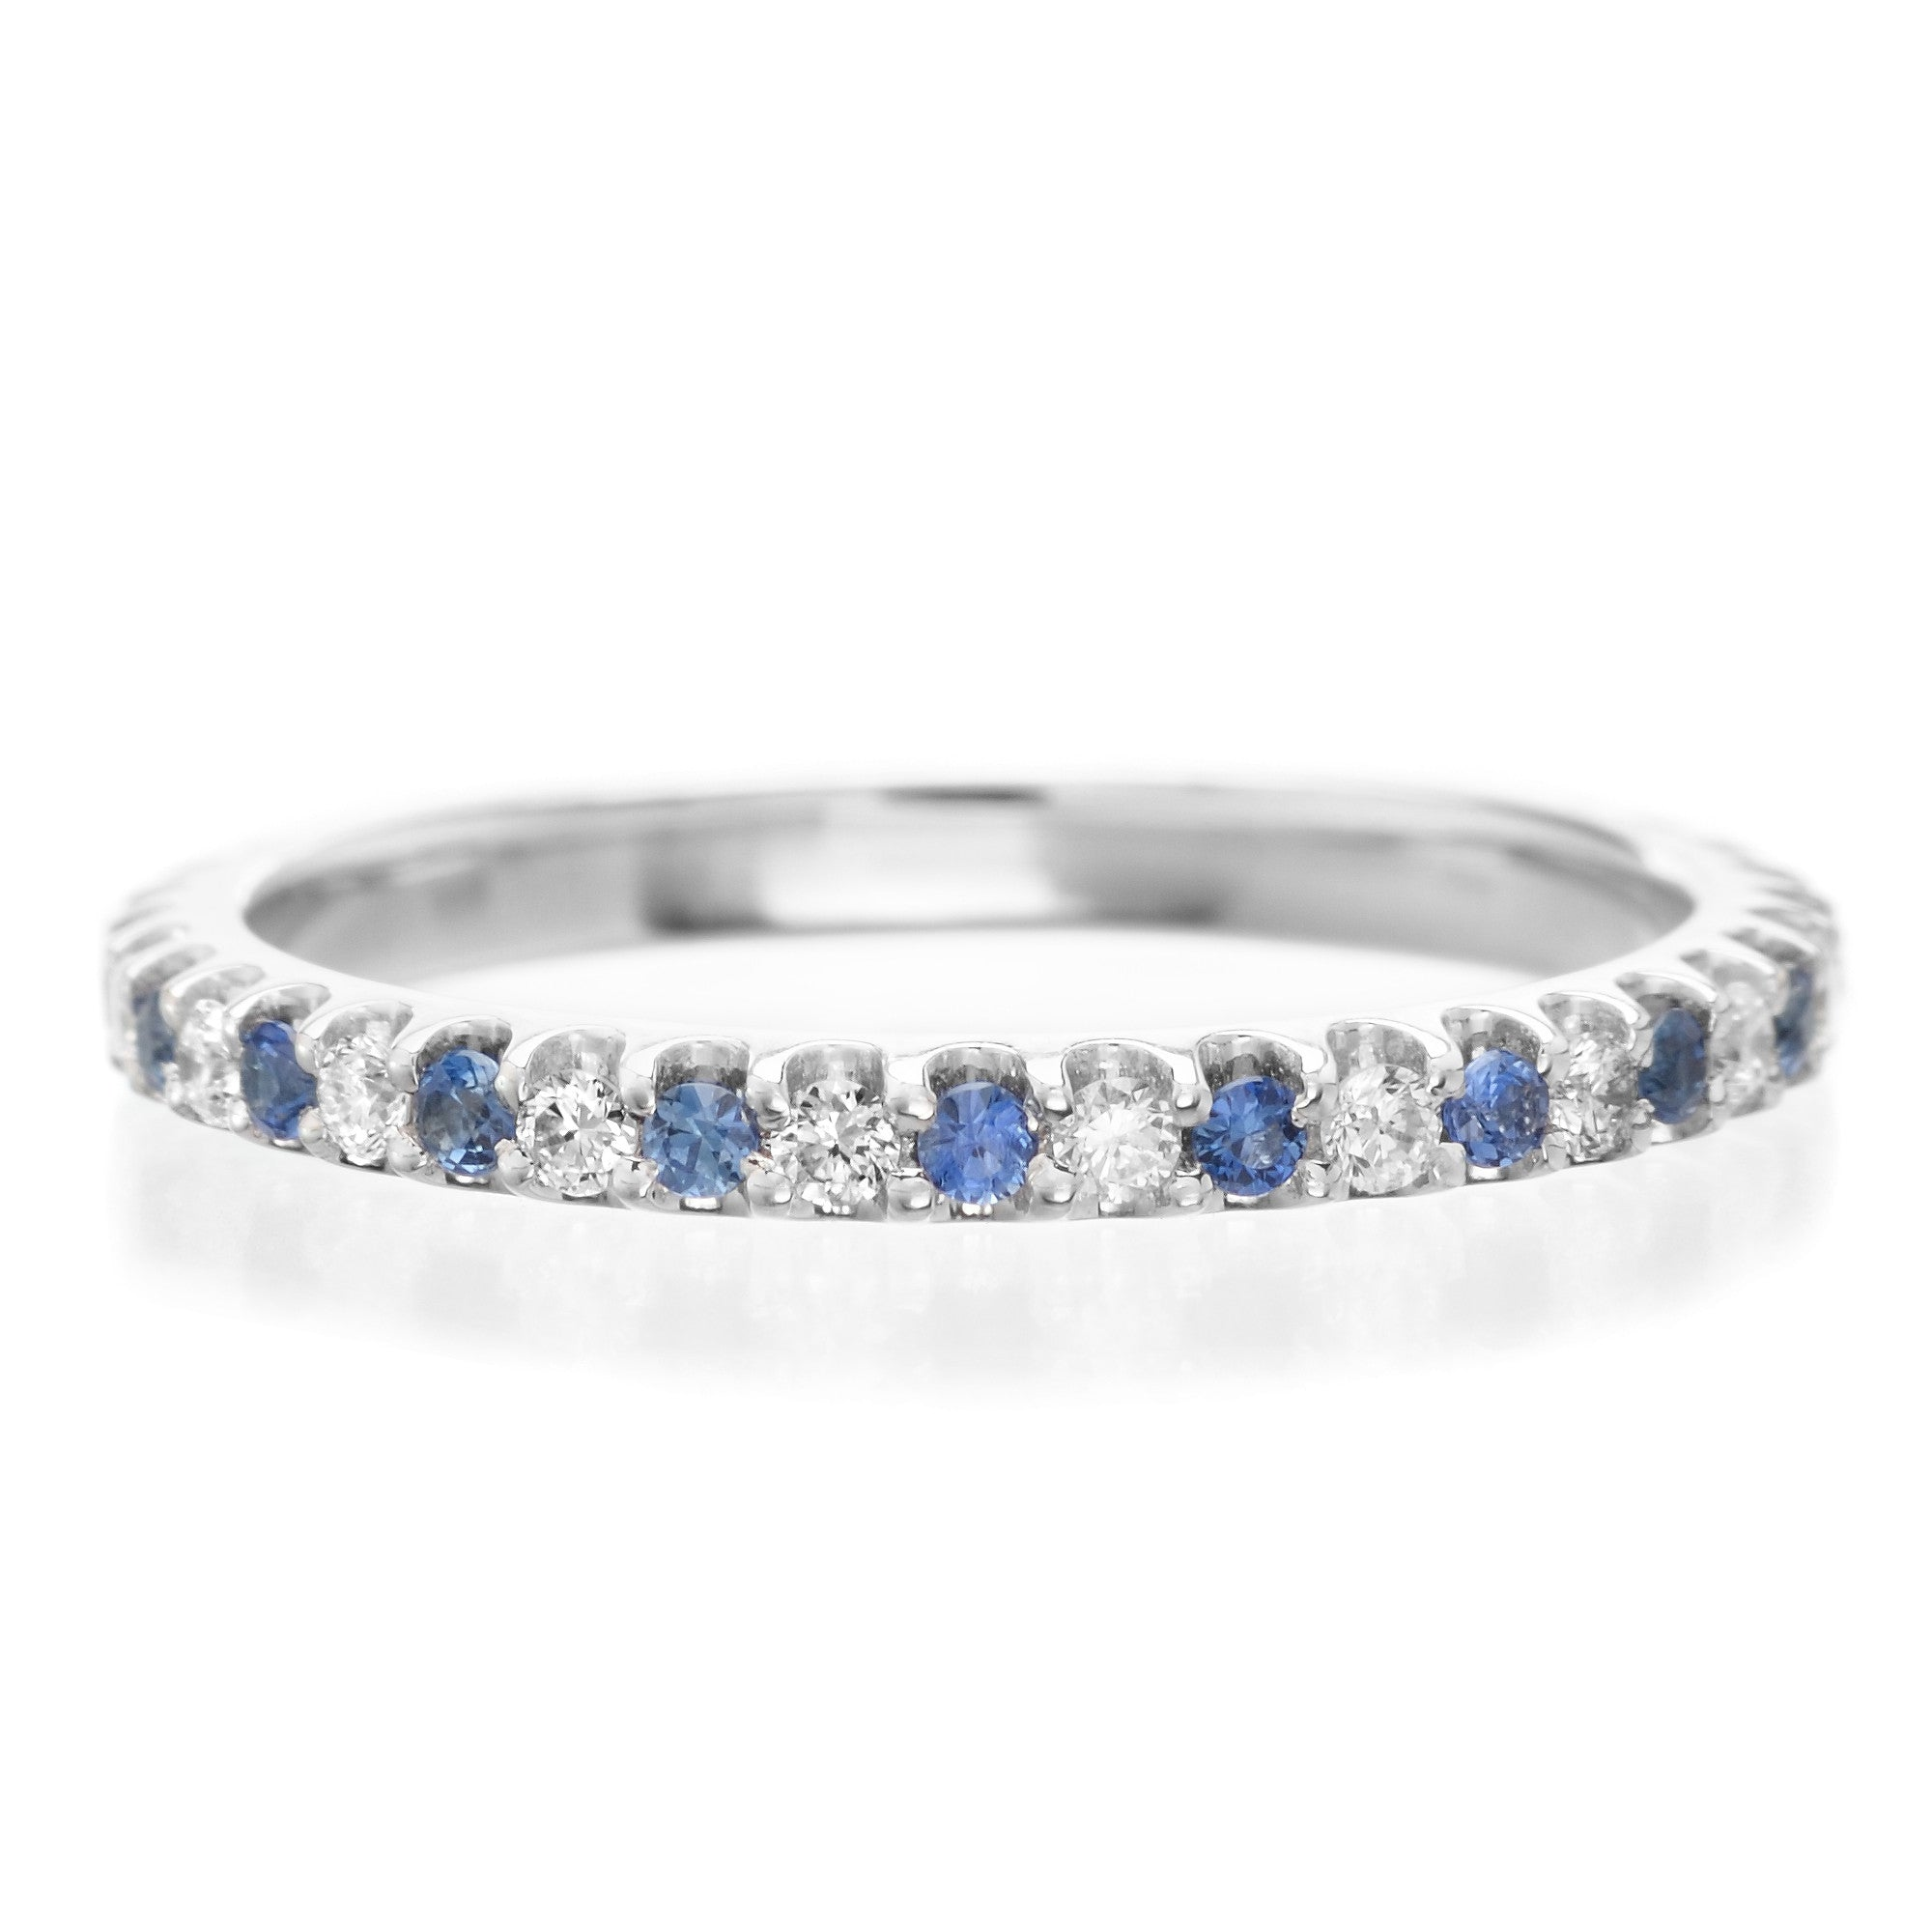 18K White Gold Alternating Sapphire & Diamond Eternity Band